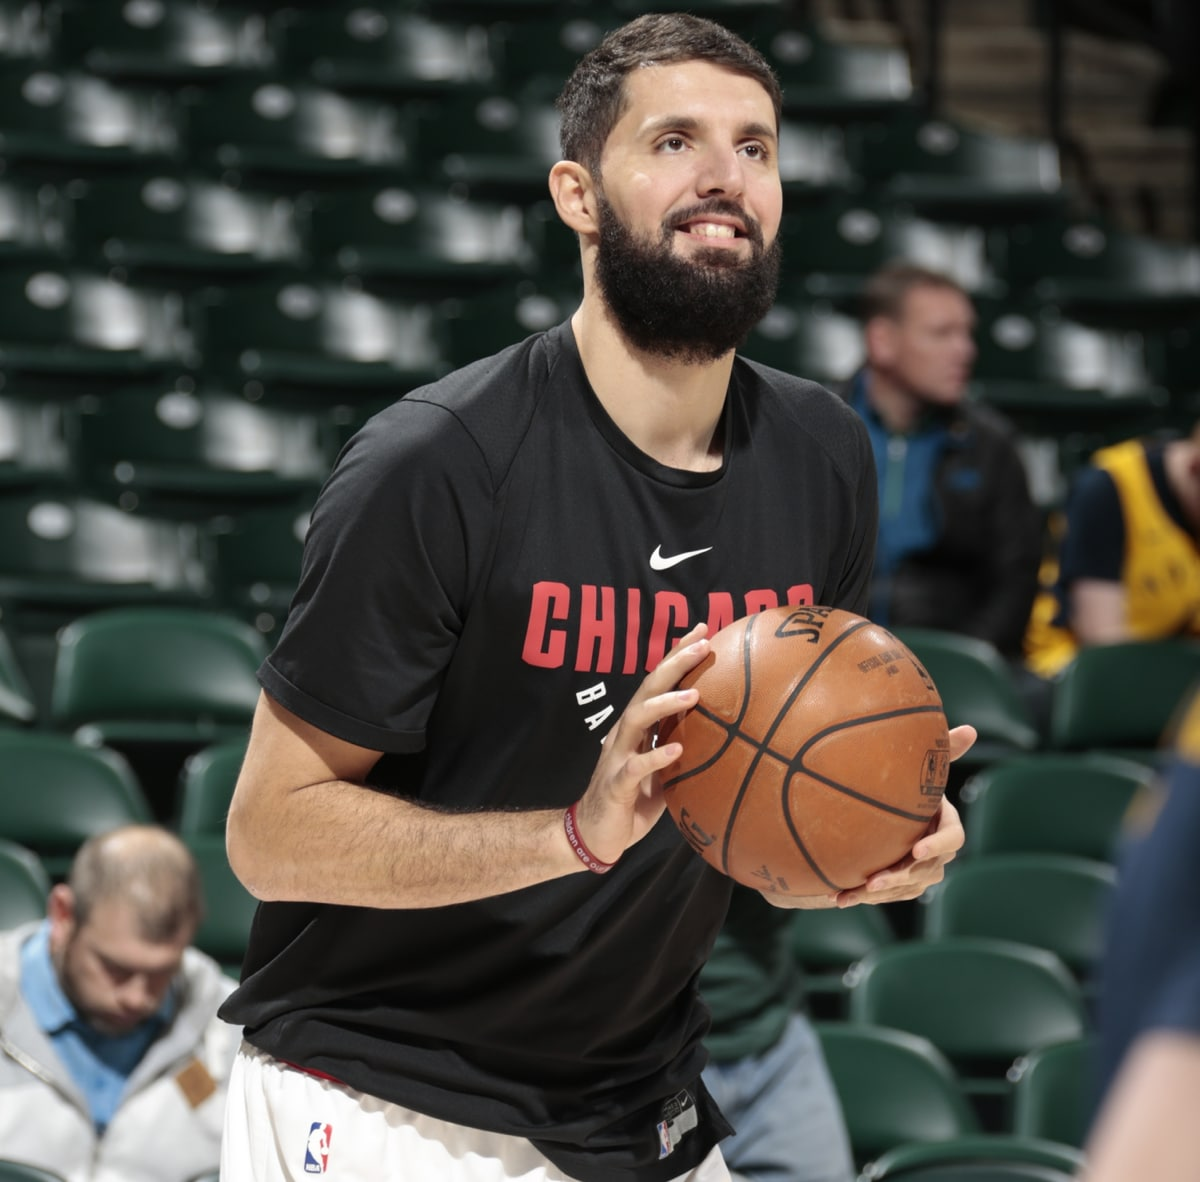 Nikola Mirotic throws up some shots prior to Saturday's game against Indiana